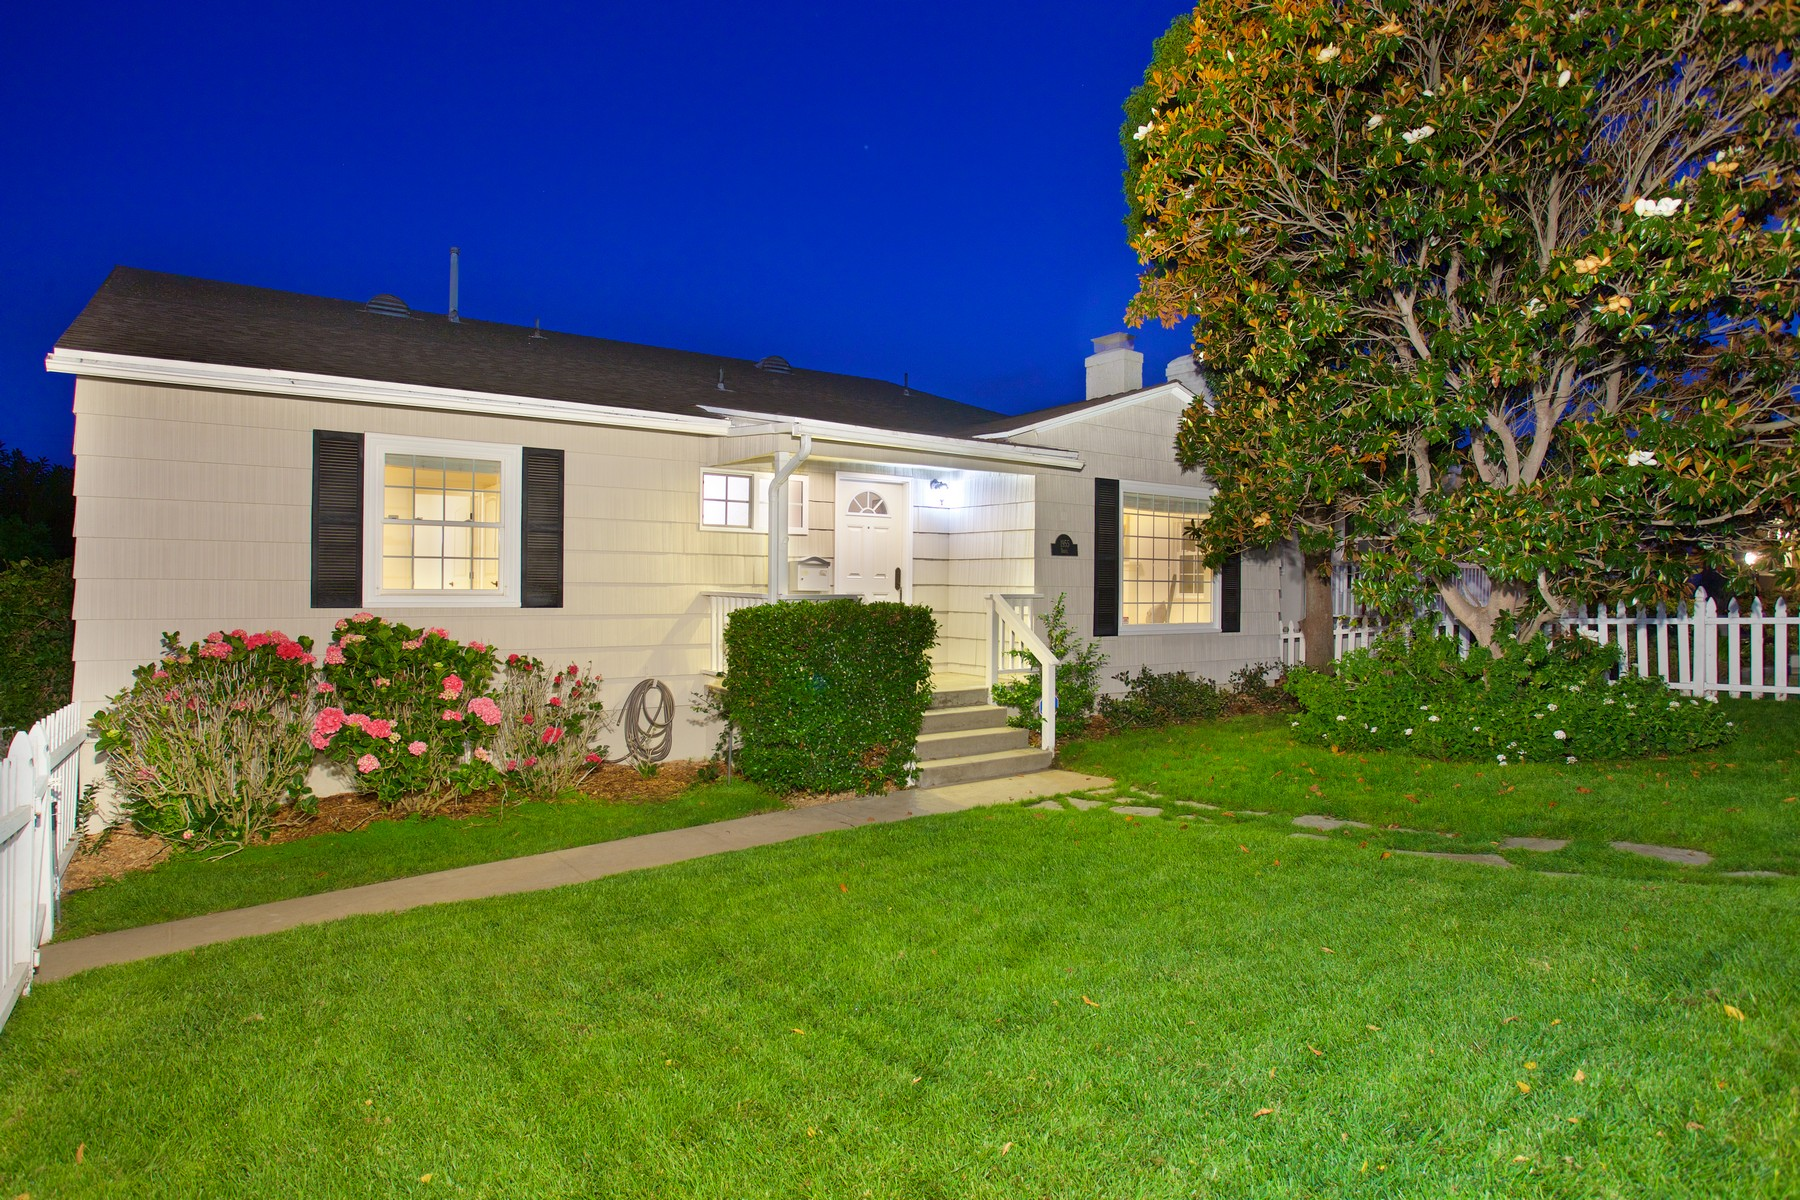 Single Family Home for Sale at 1955 Beryl St Pacific Beach, San Diego, California 92109 United States